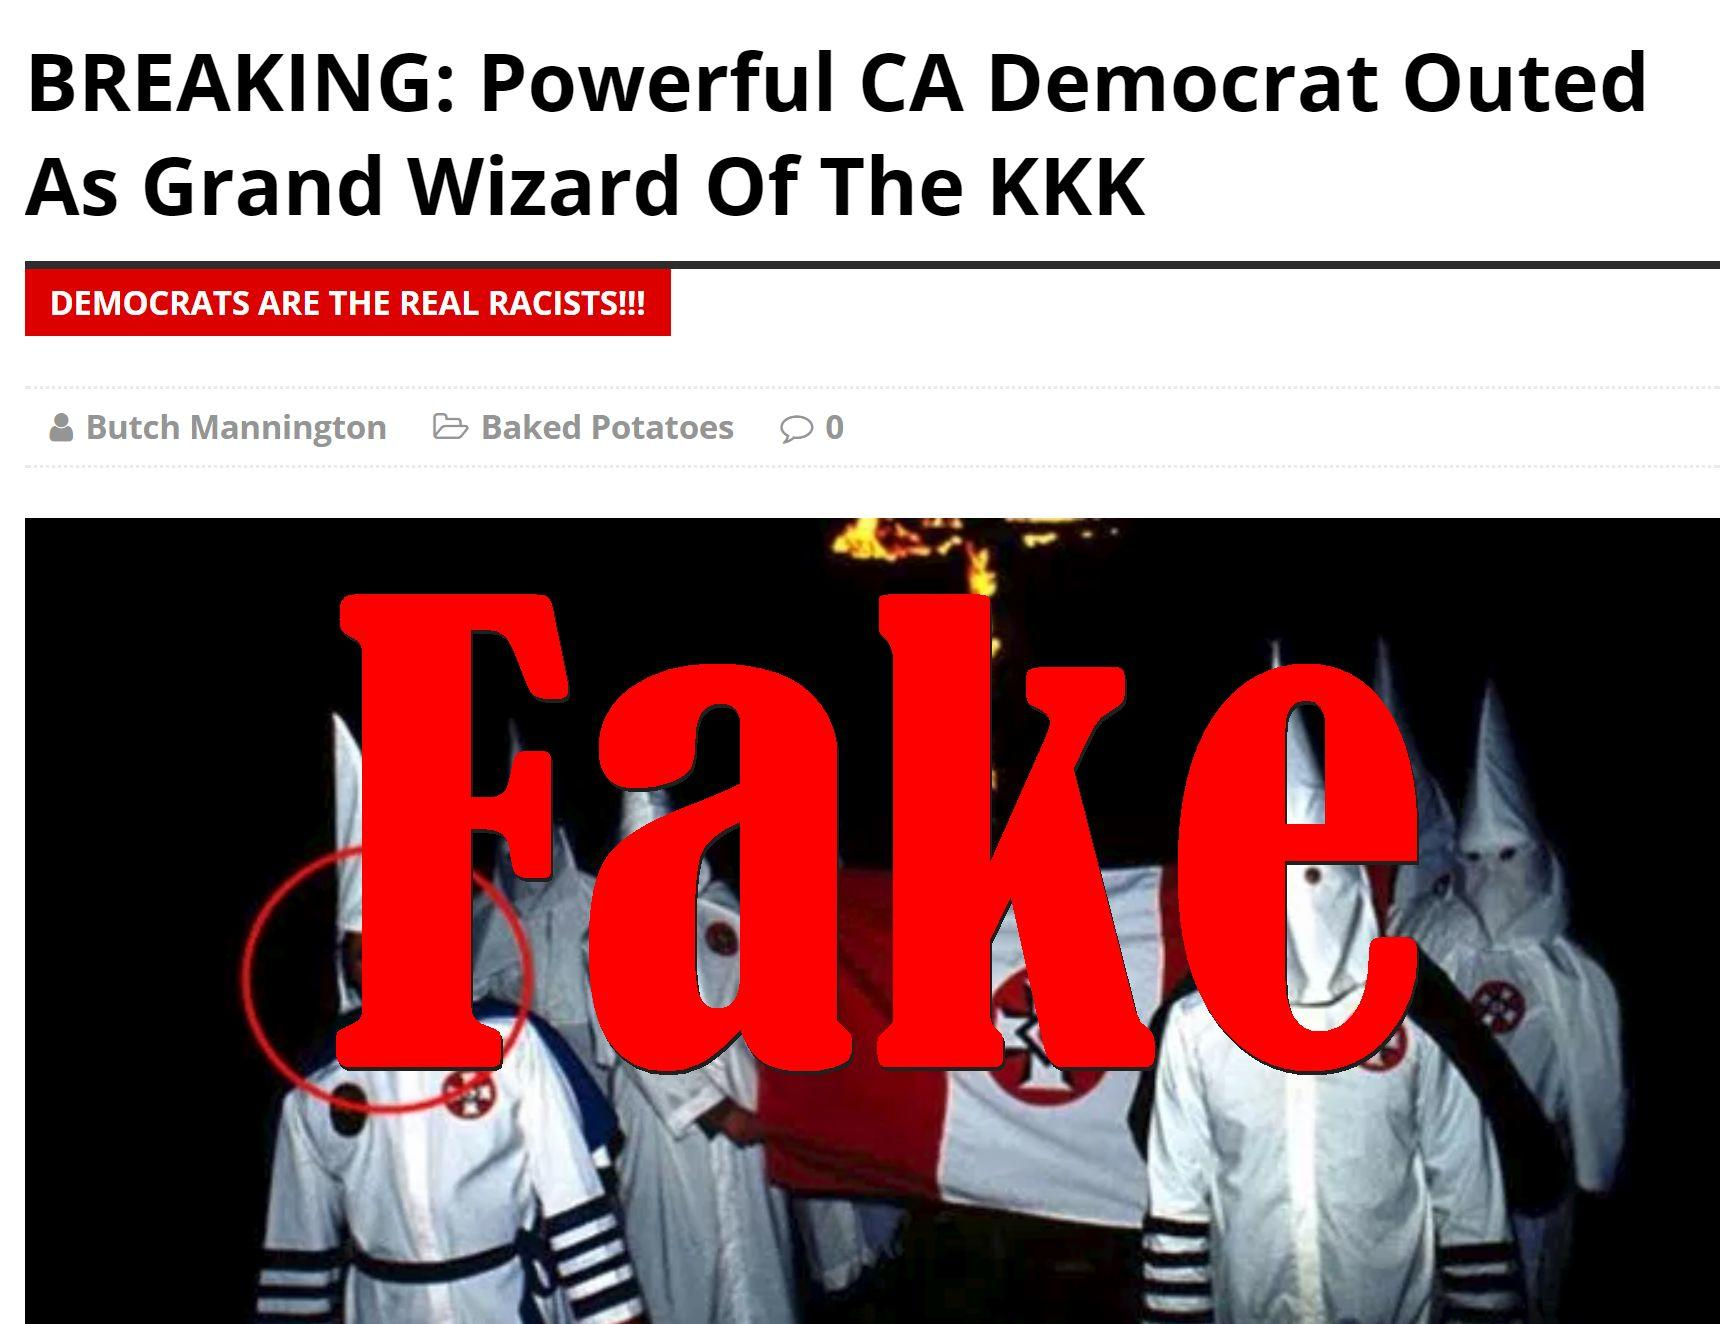 Fake News: Powerful CA Democrat NOT Outed As Grand Wizard Of The KKK